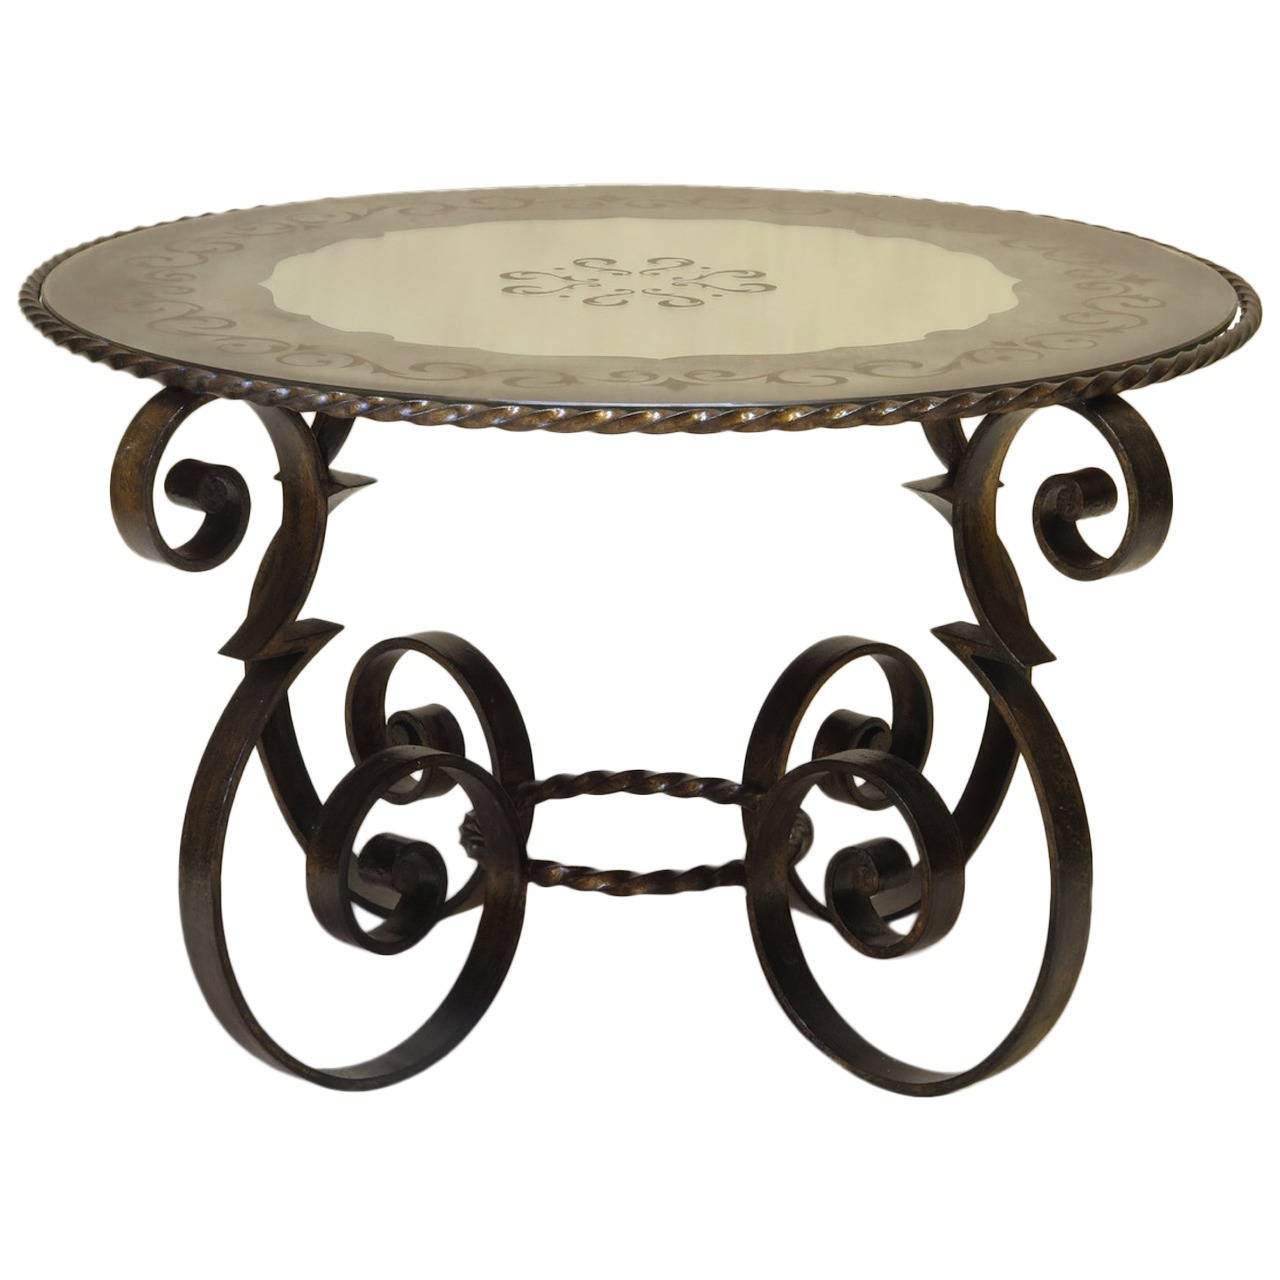 Wrought iron coffee table with eglomis mirror top france for Wrought iron coffee table for sale